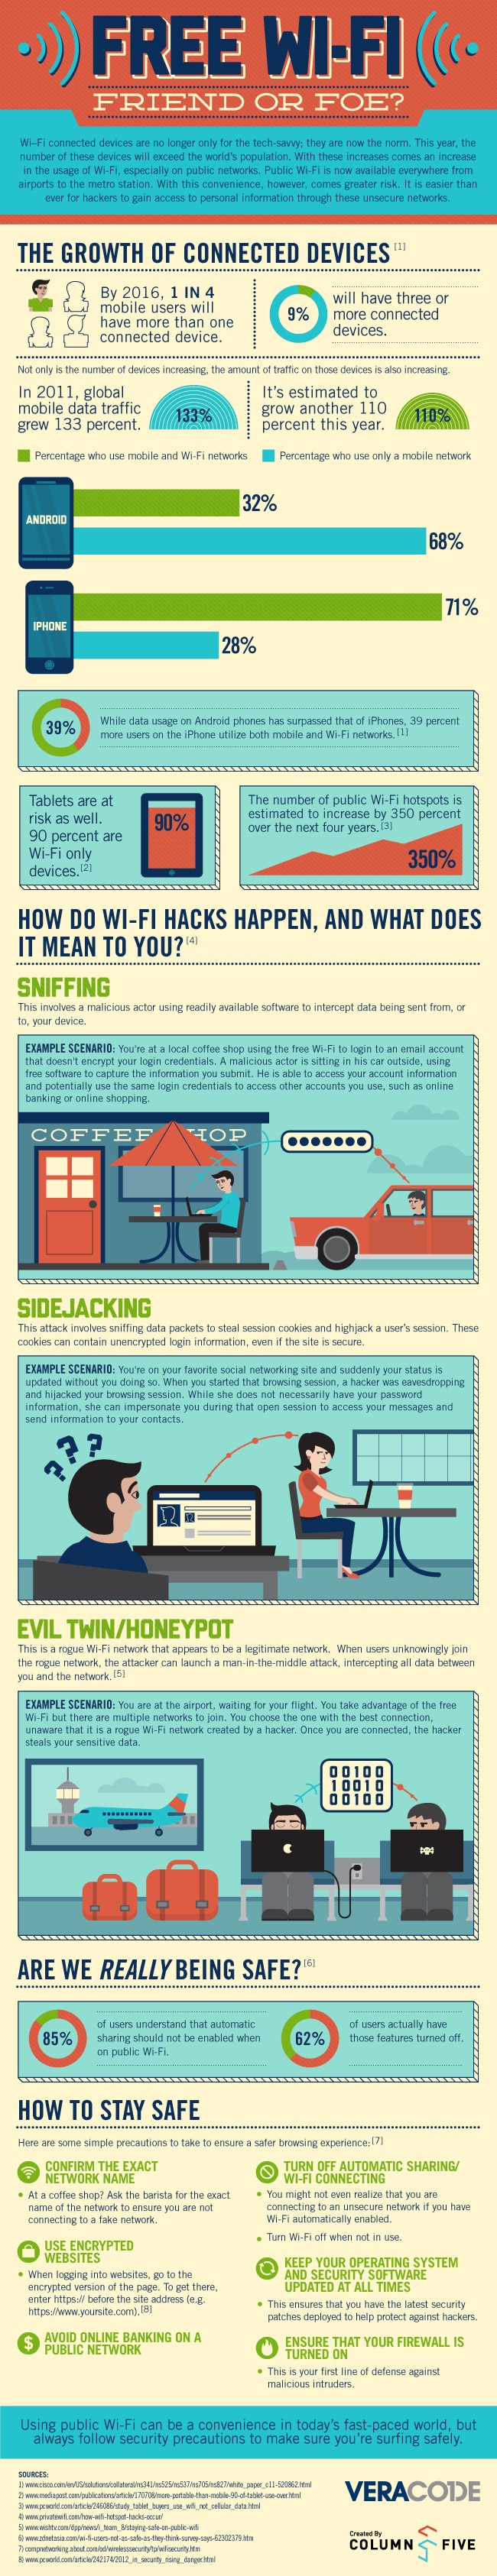 Friend Or Foe: The Dangers Of Free Wi-Fi [Infographic]